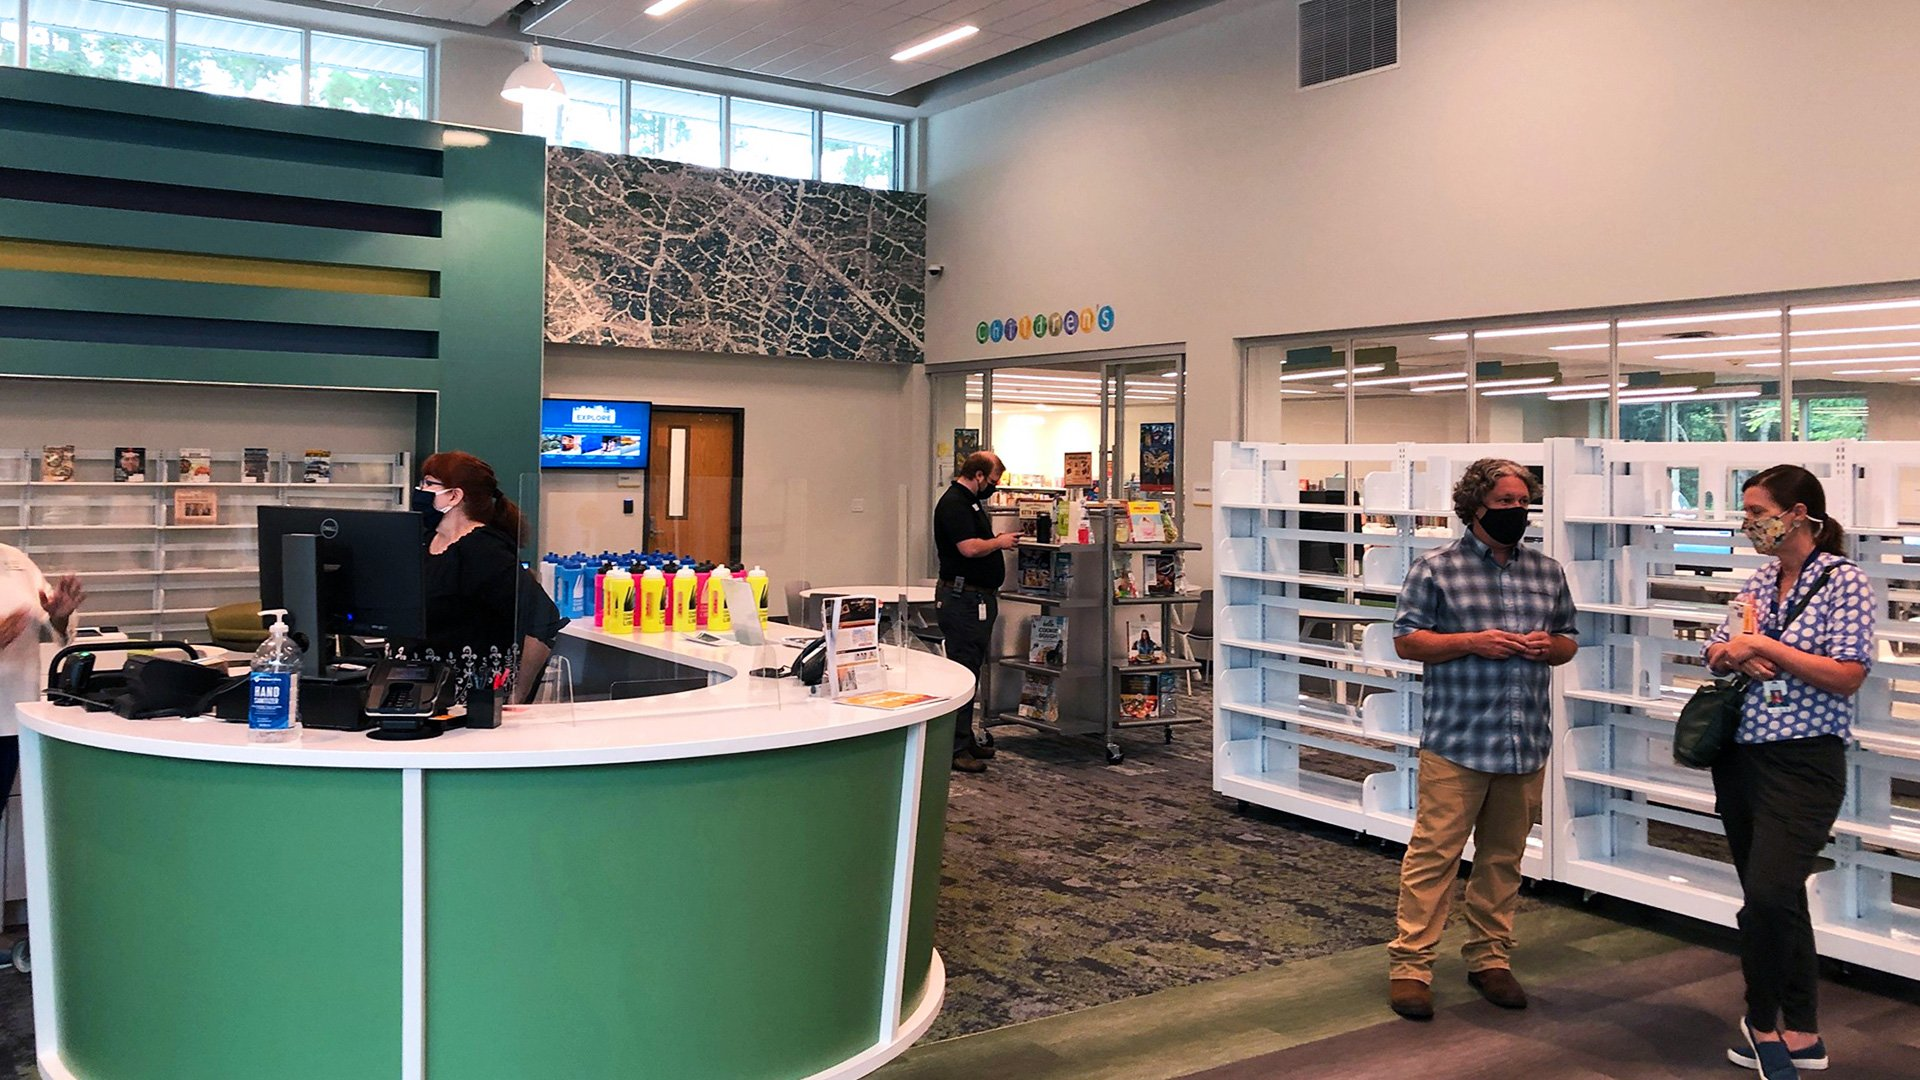 Johns Island Library Reopens, Shows Off Renovations